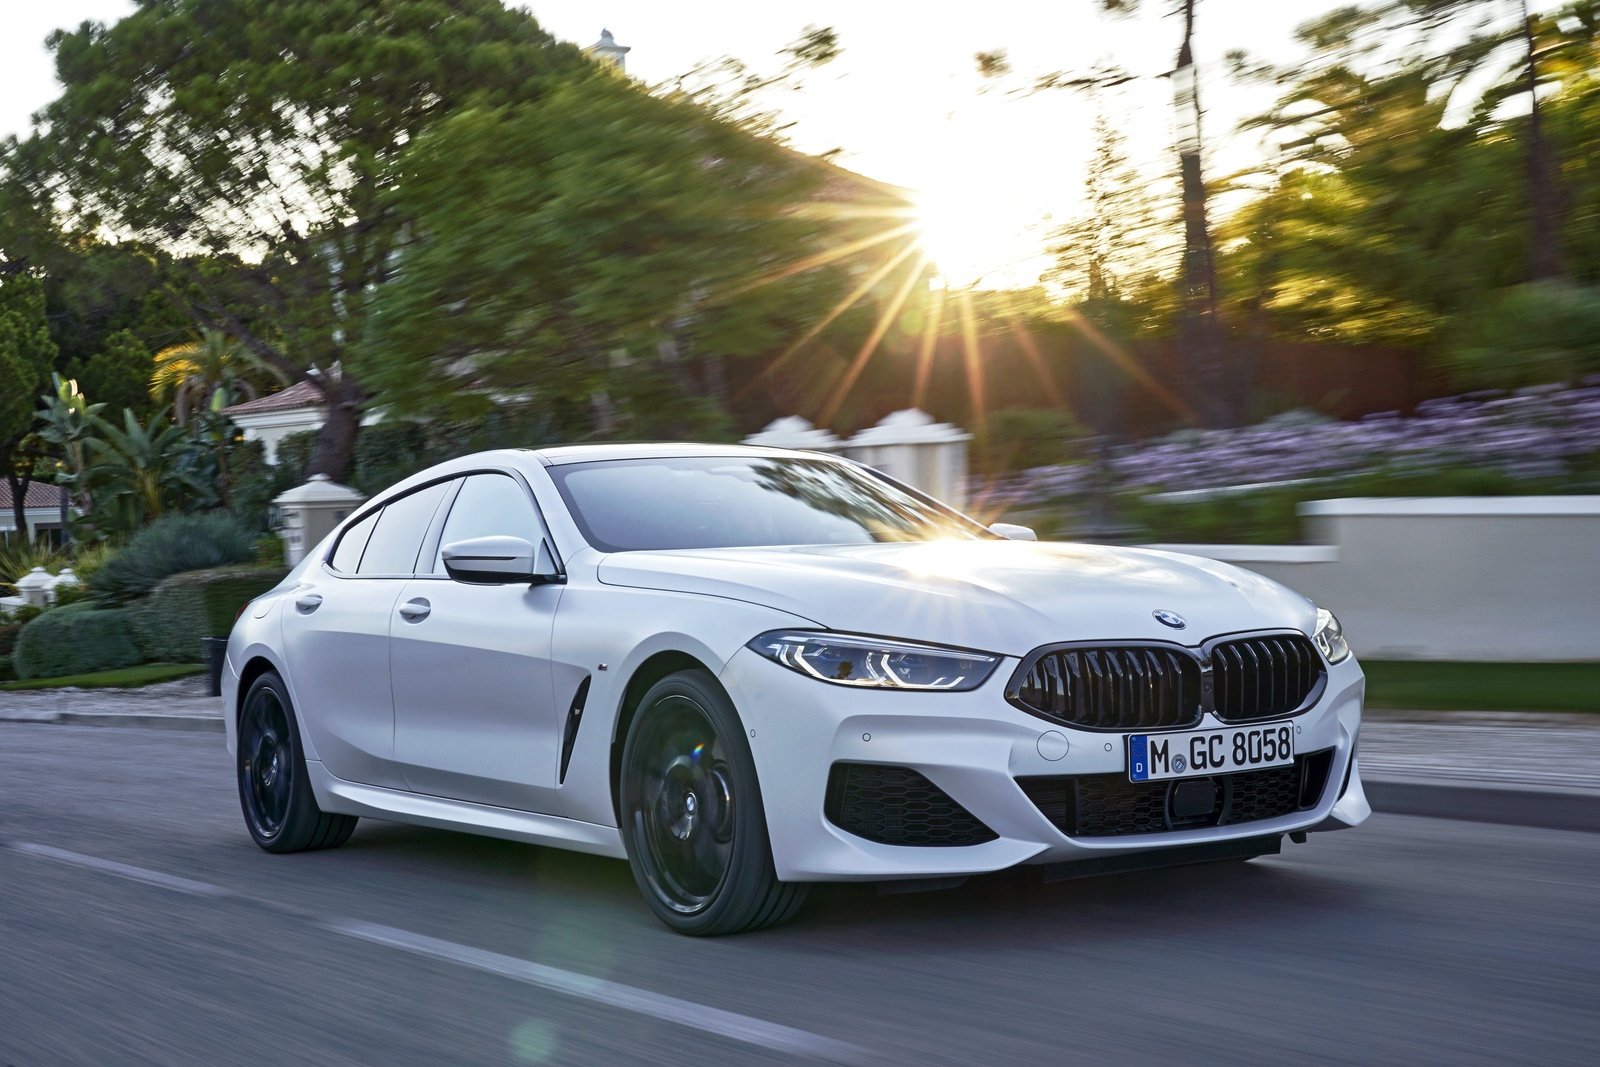 2020 Bmw 8 Series Gran Coupe White